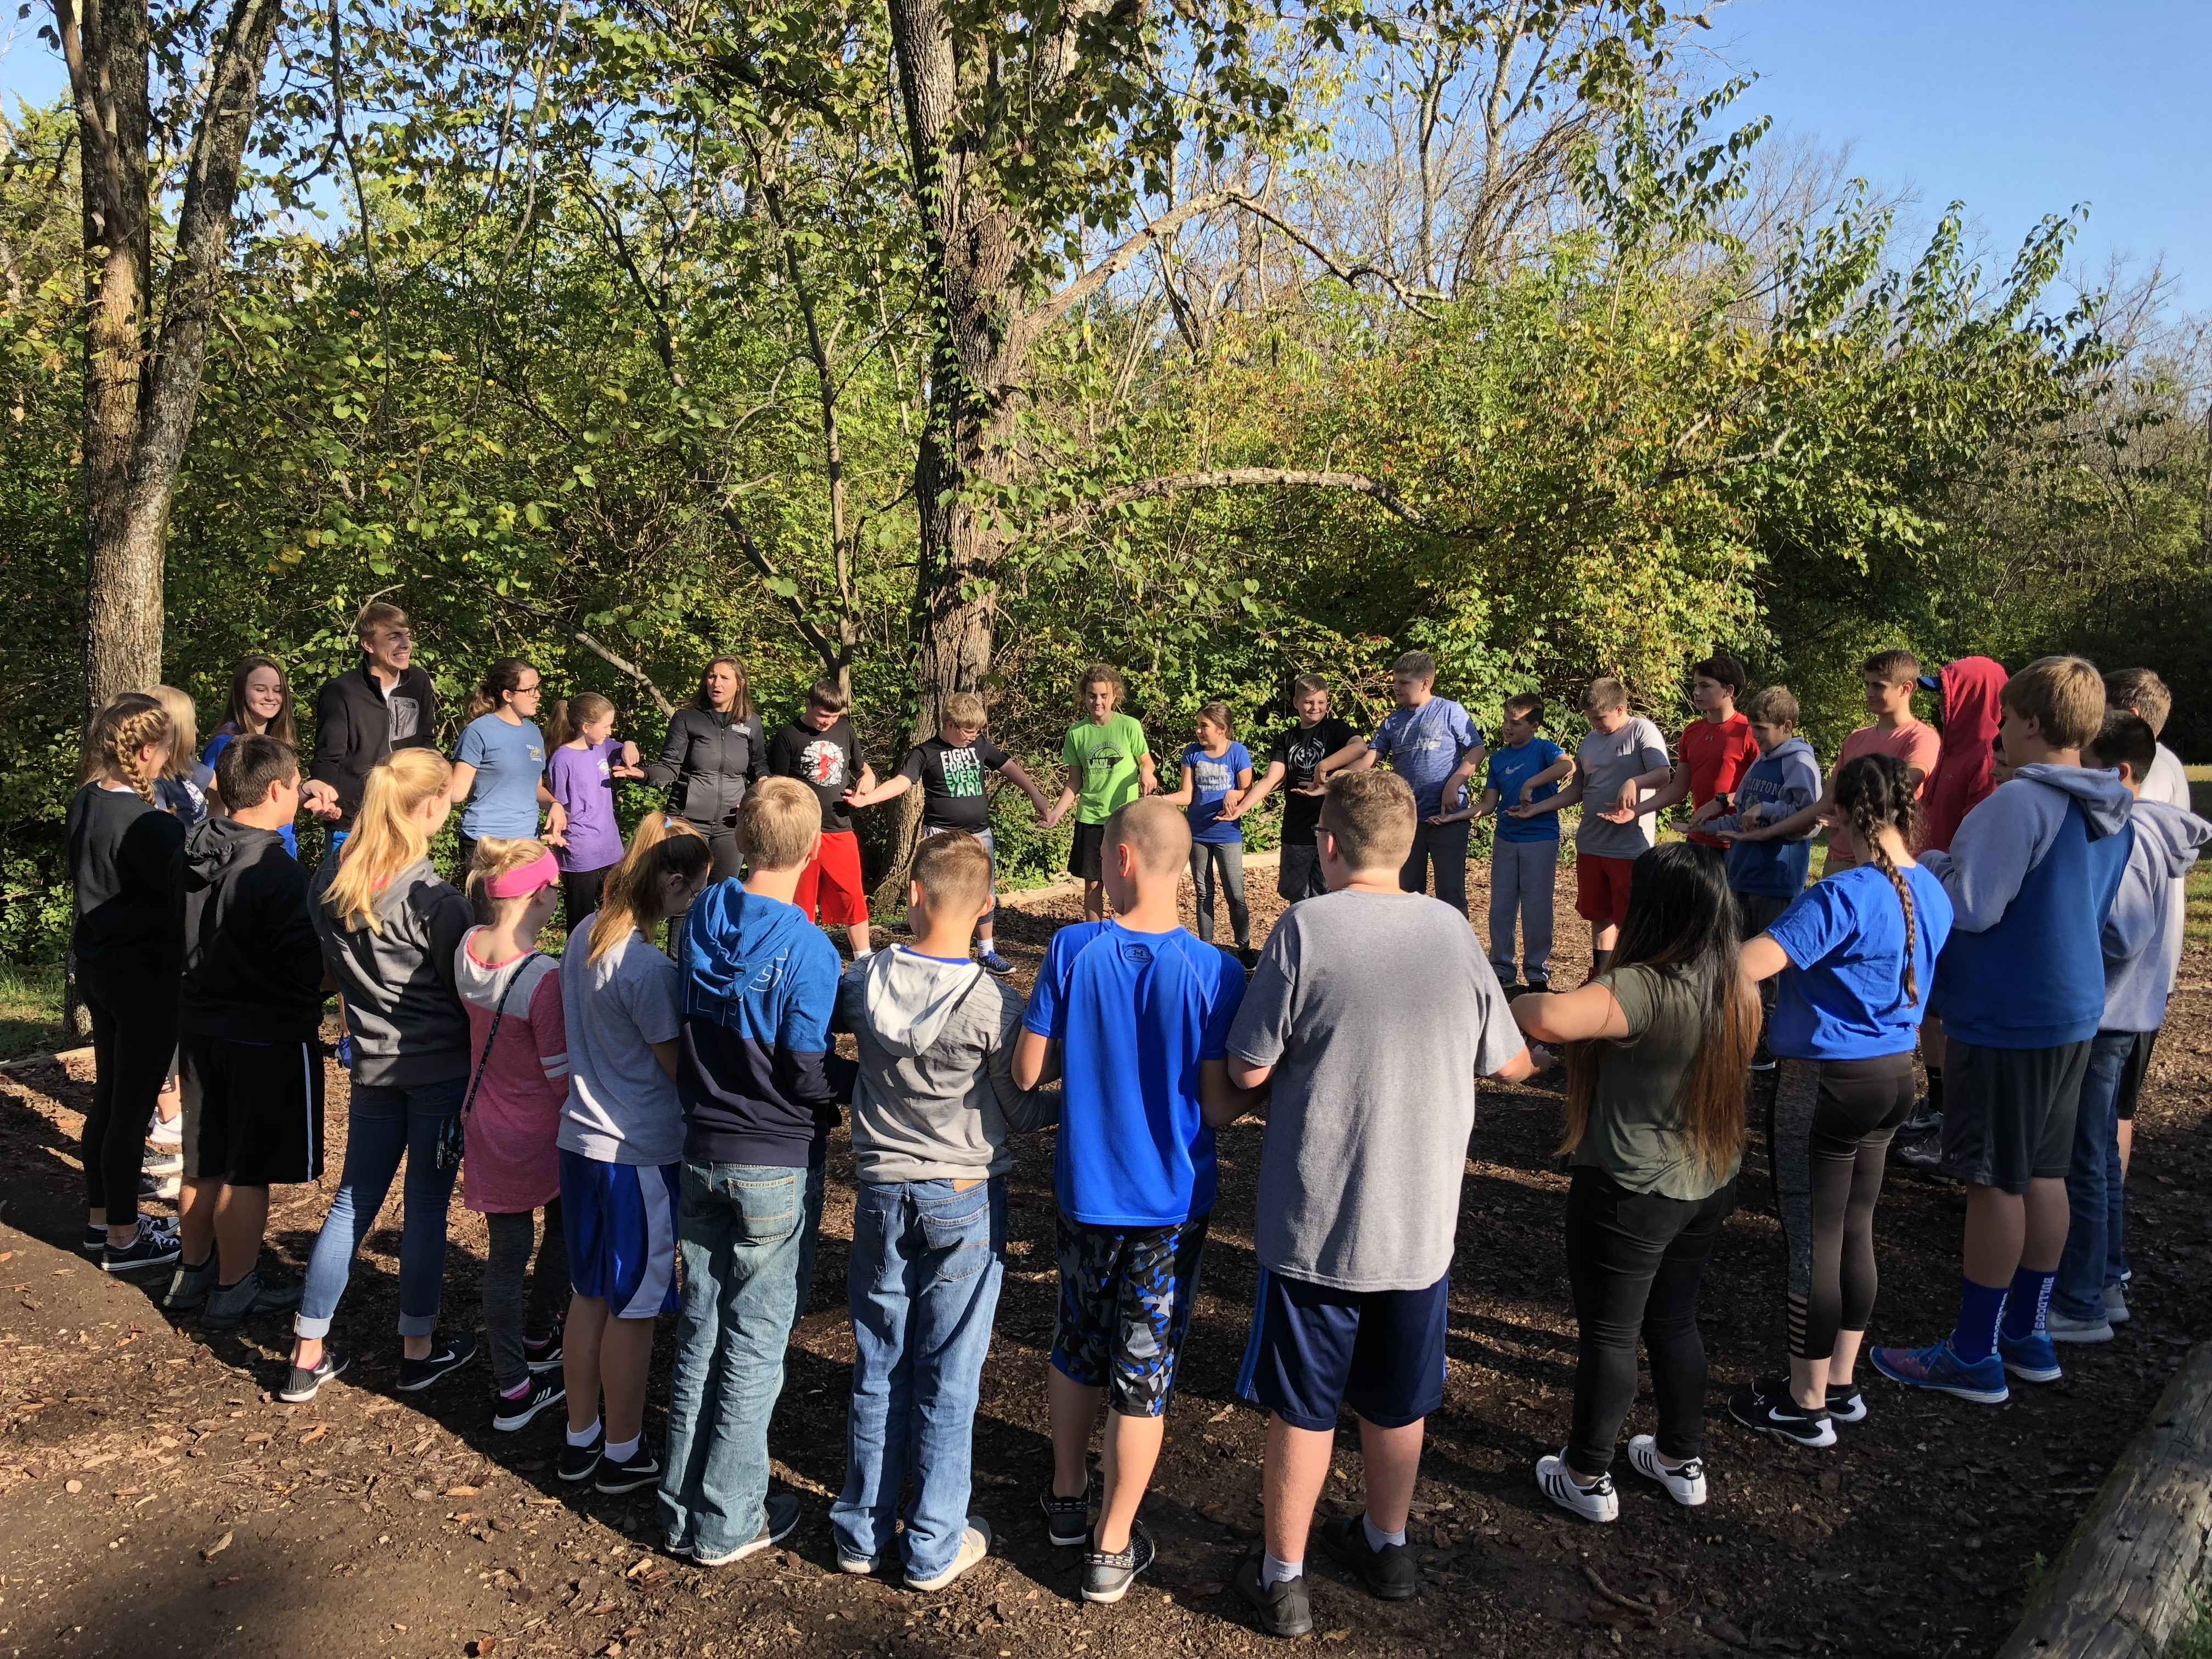 On Friday, October 13th, Gifted & Talented students from CCMS and CCHS were transported to Asbury University Challenge Course in Wilmore, Kentucky.